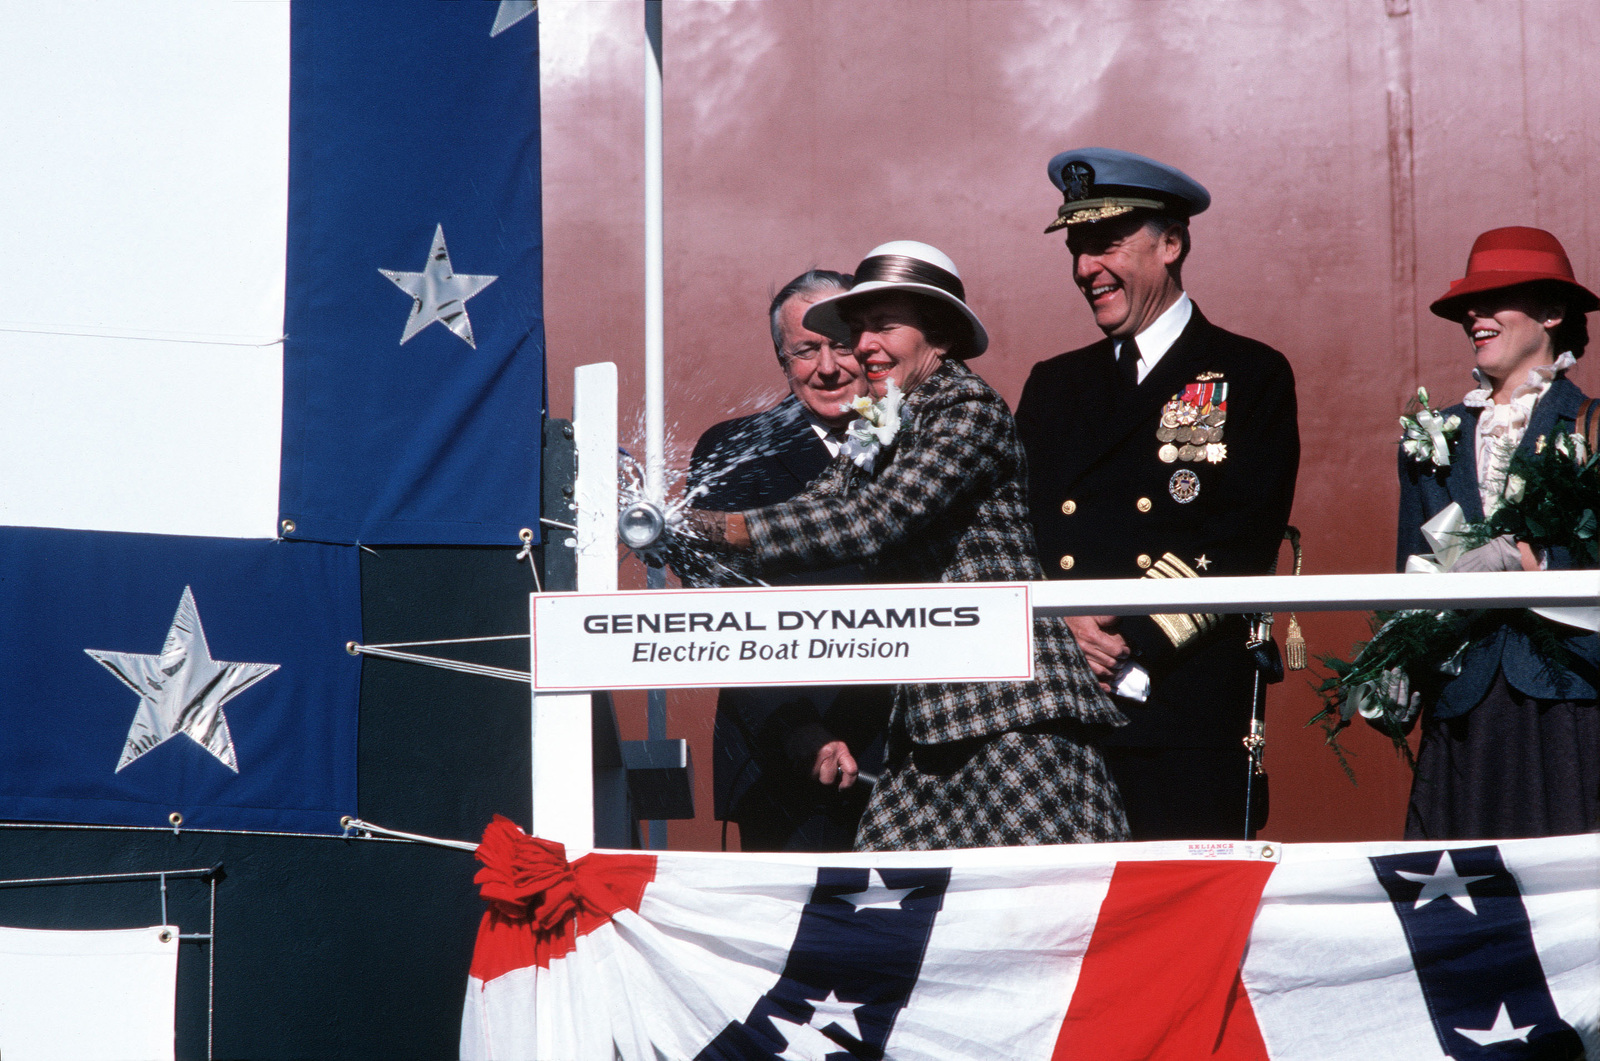 During the launching ceremony Sponsor Sheila McKinney Watkins, Susan Watkin breaks the traditional bottle of champagne over the nuclear-powered strategic missile submarine USS GEORGIA (SSBN 729). Behind her, from left to right, is David S. Lewis, Chairman of the Board at General Dynamics; Admiral James D. Watkins, Chief of Naval Operations, and Maid of Honor Susan Watkins